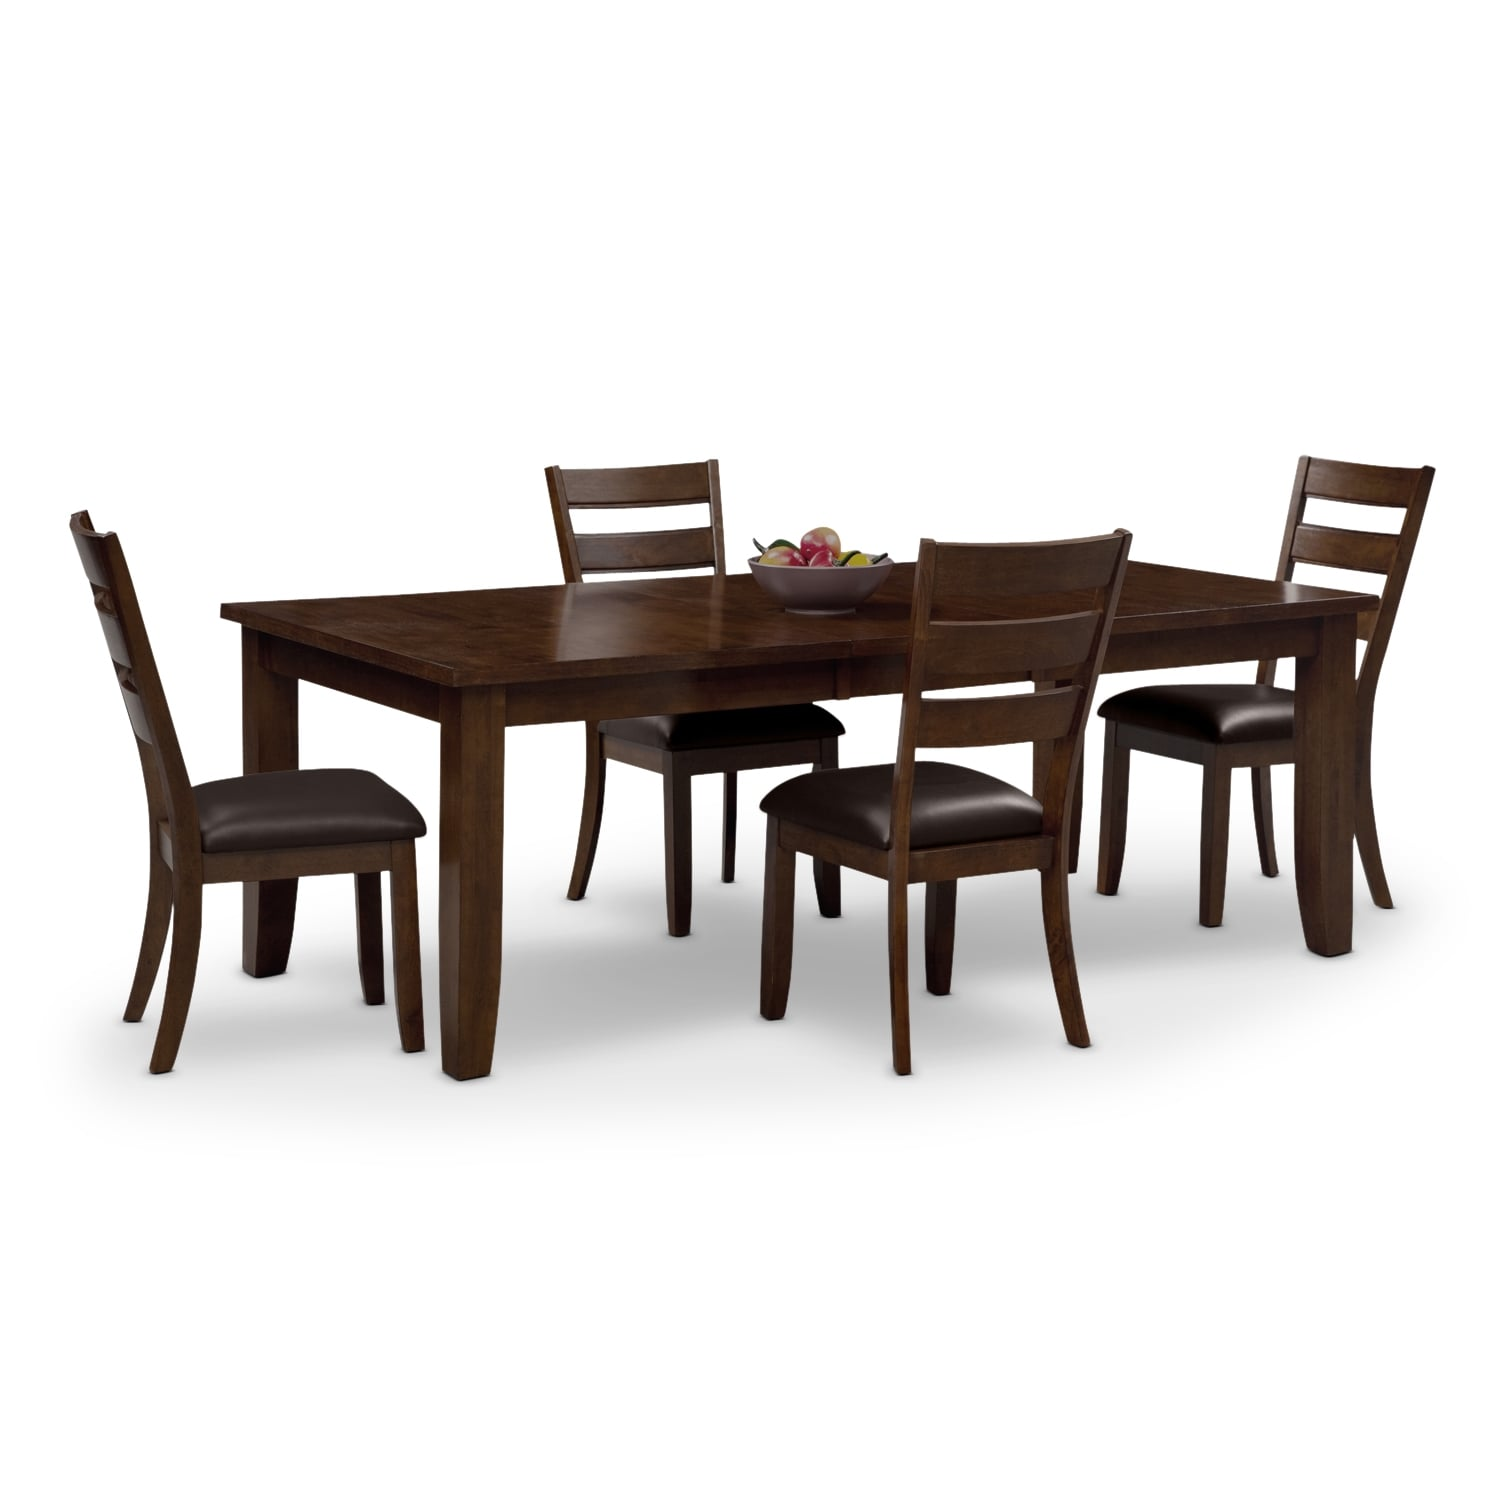 Value City Chairs Abaco 5 Pc Dinette Value City Furniture